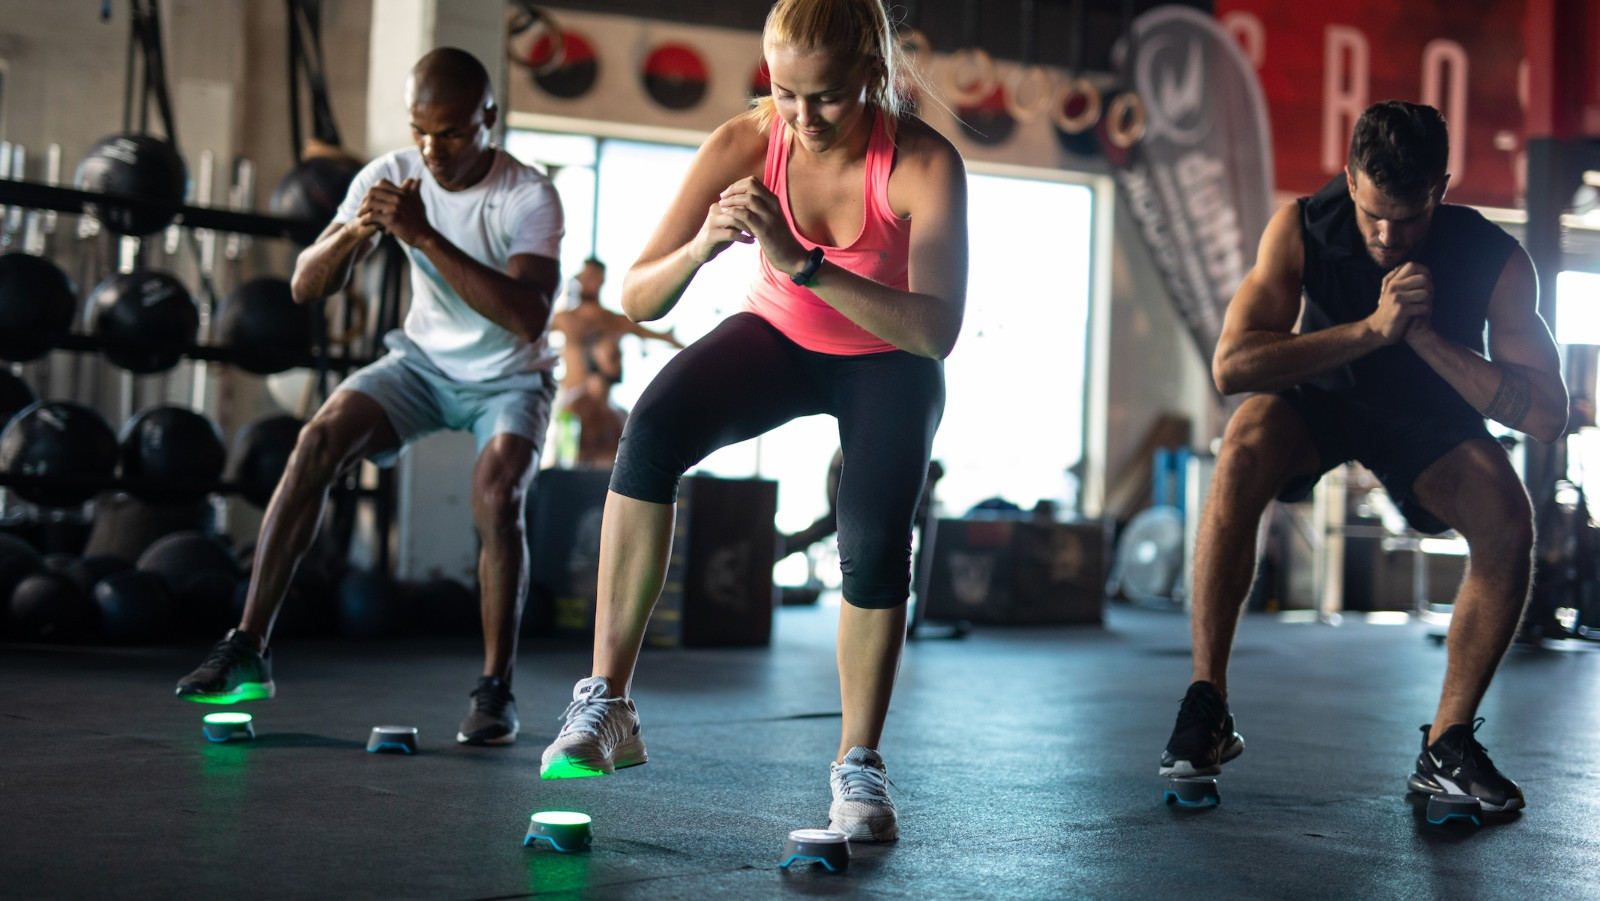 Light Workout: High-Tech Way To Brighten Up Exercise Routines